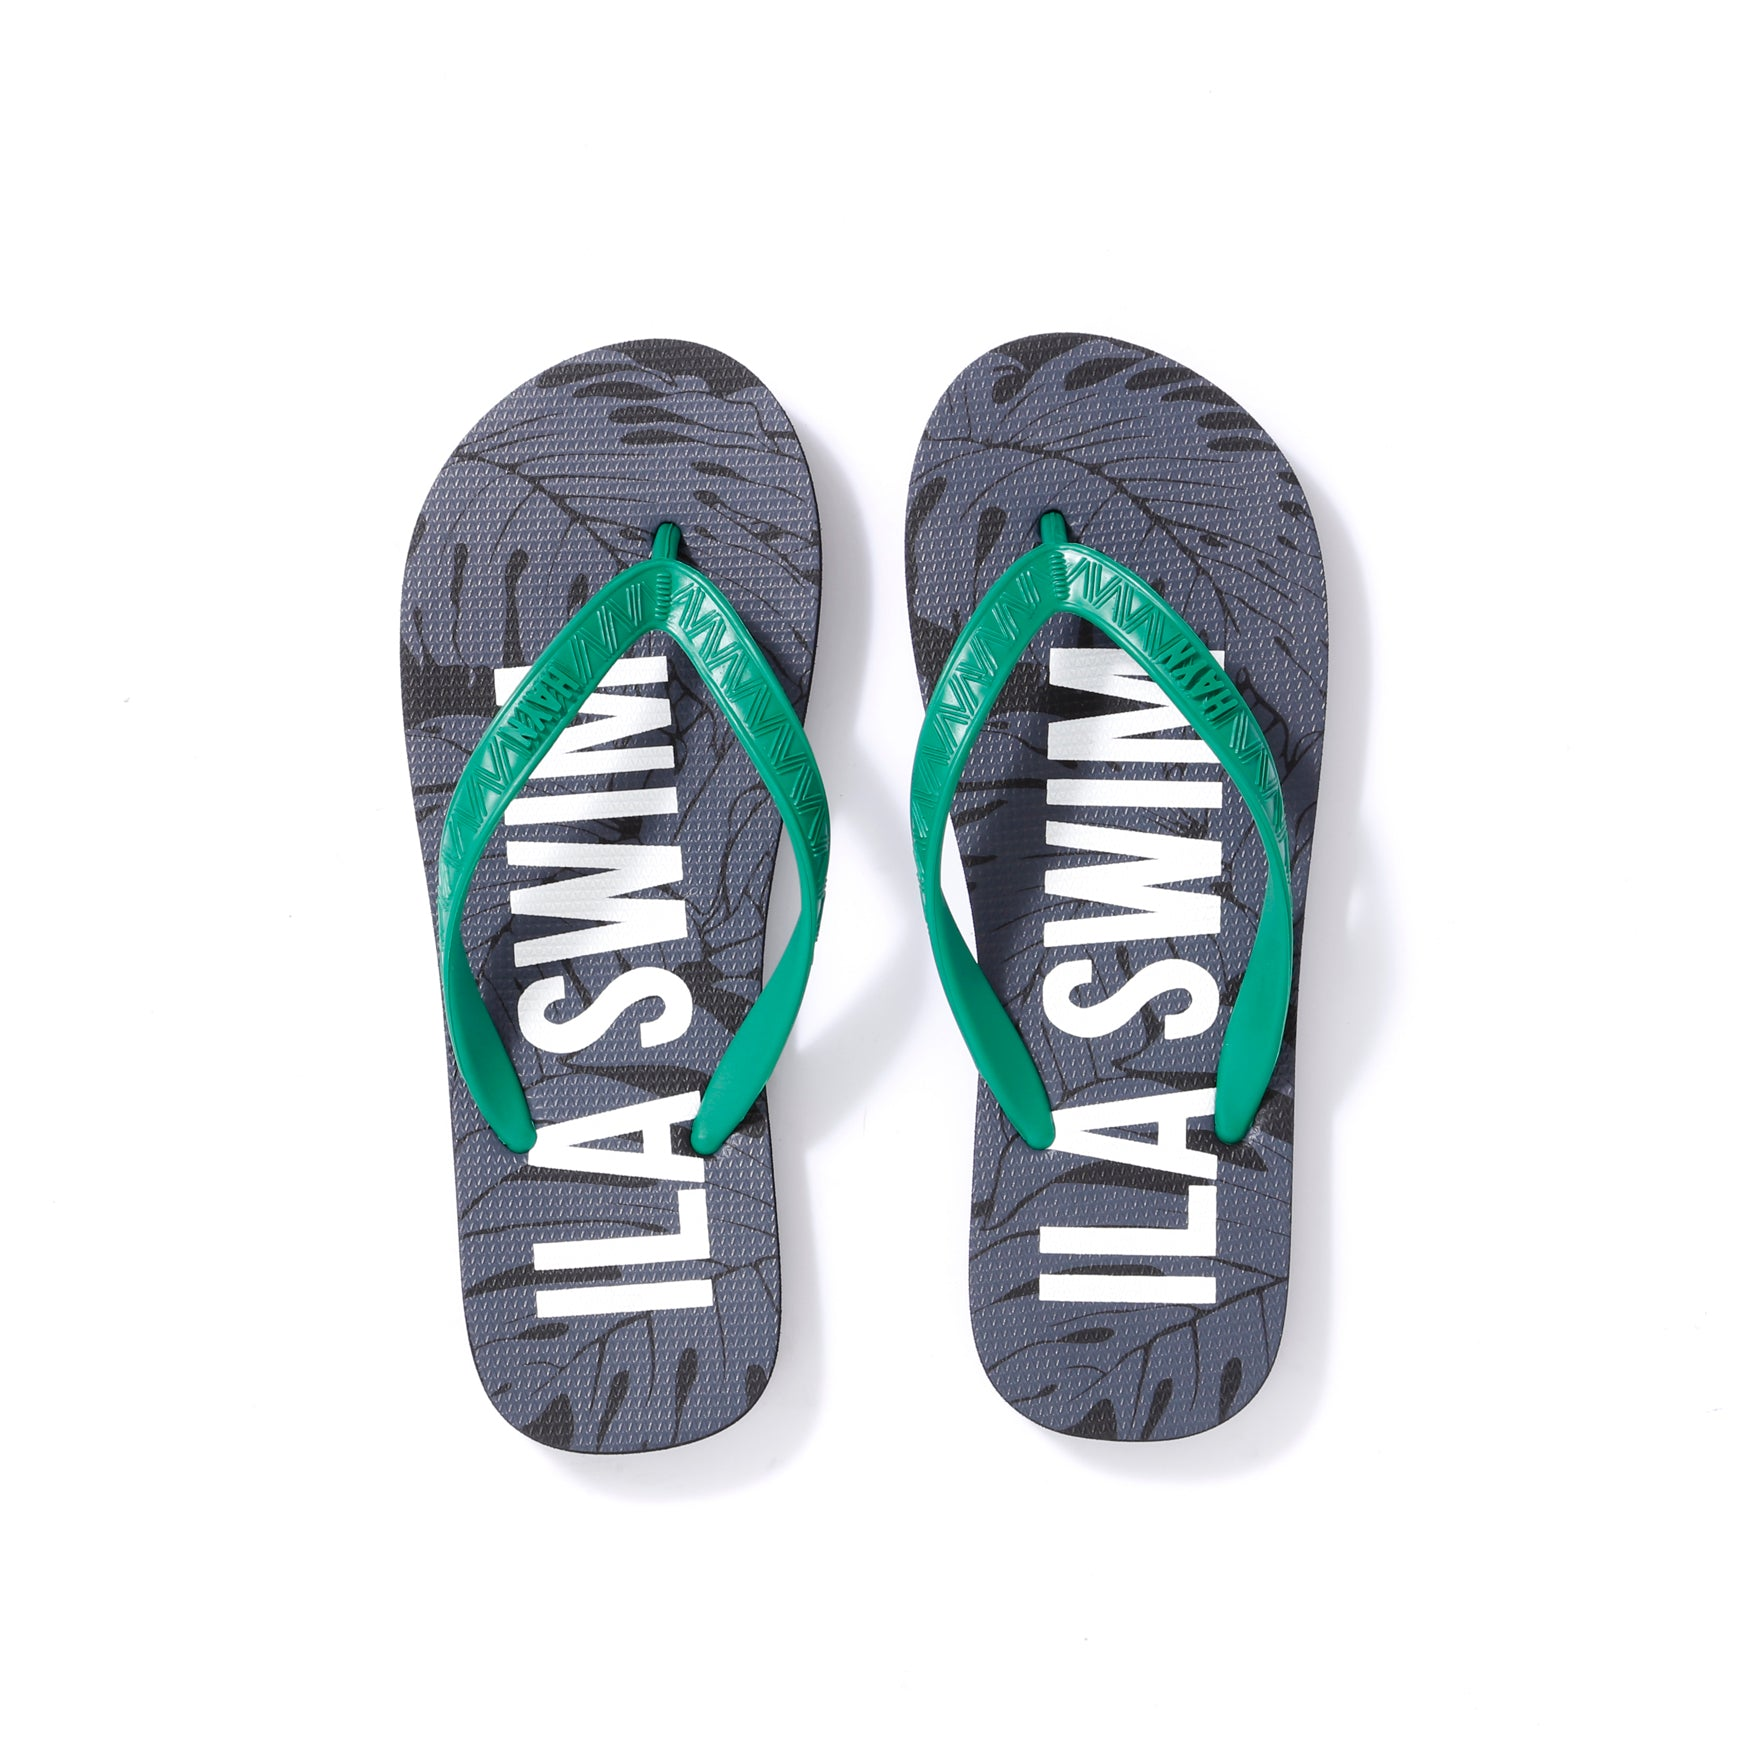 SIG ON SMITH x HAYN x ILASWIM - Menʻs Slippers